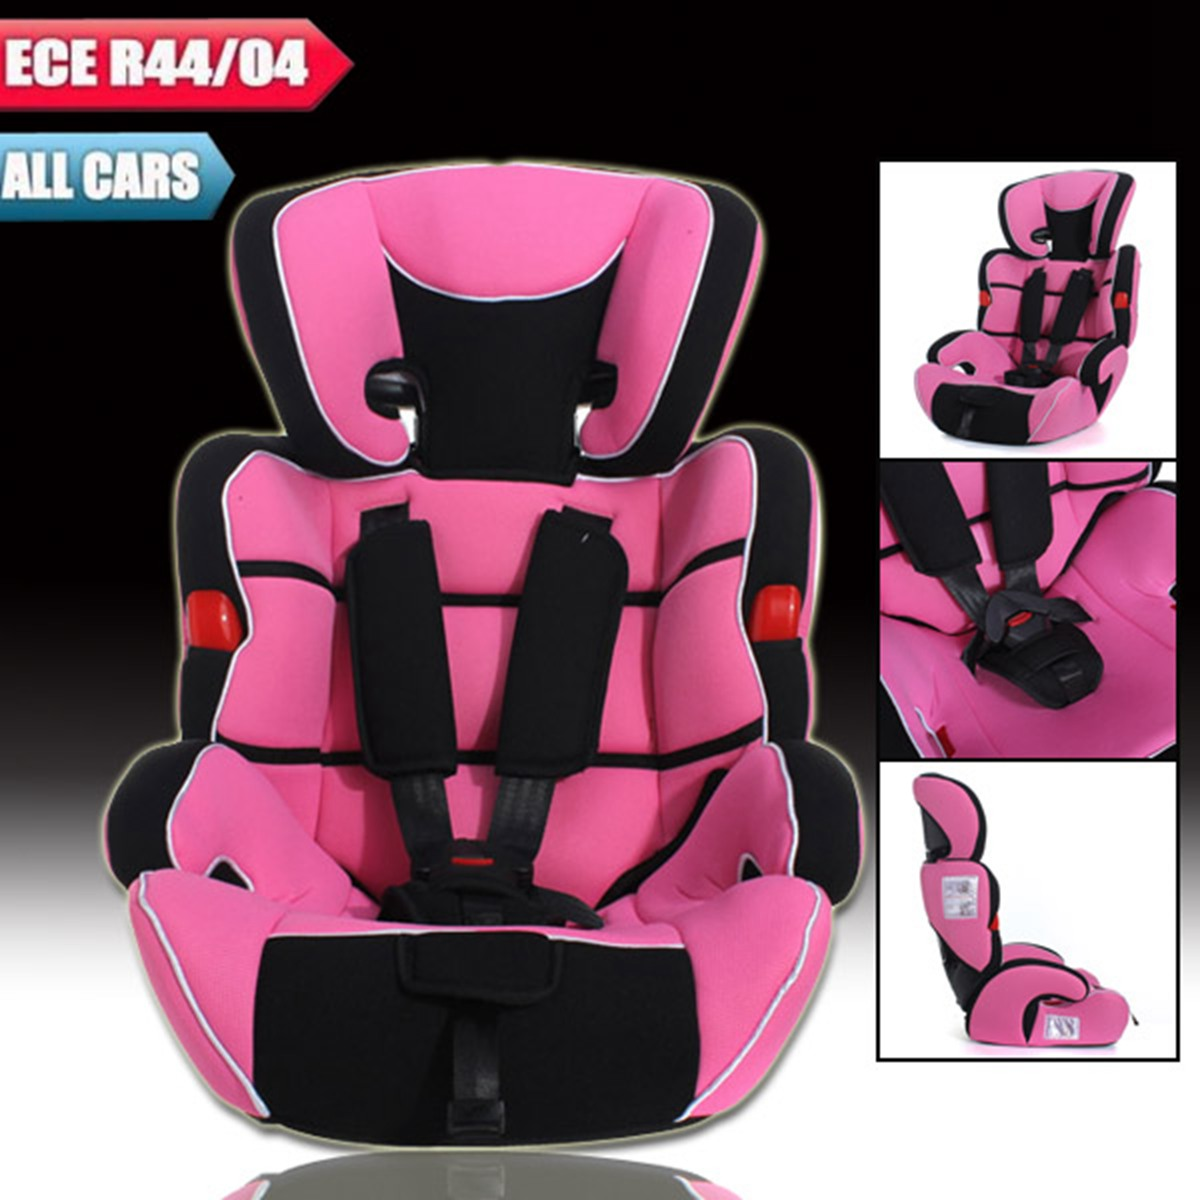 Car Seat Booster Pink Convertible Baby Children Kids Seats ECE R44 04 US STOCK On Aliexpress